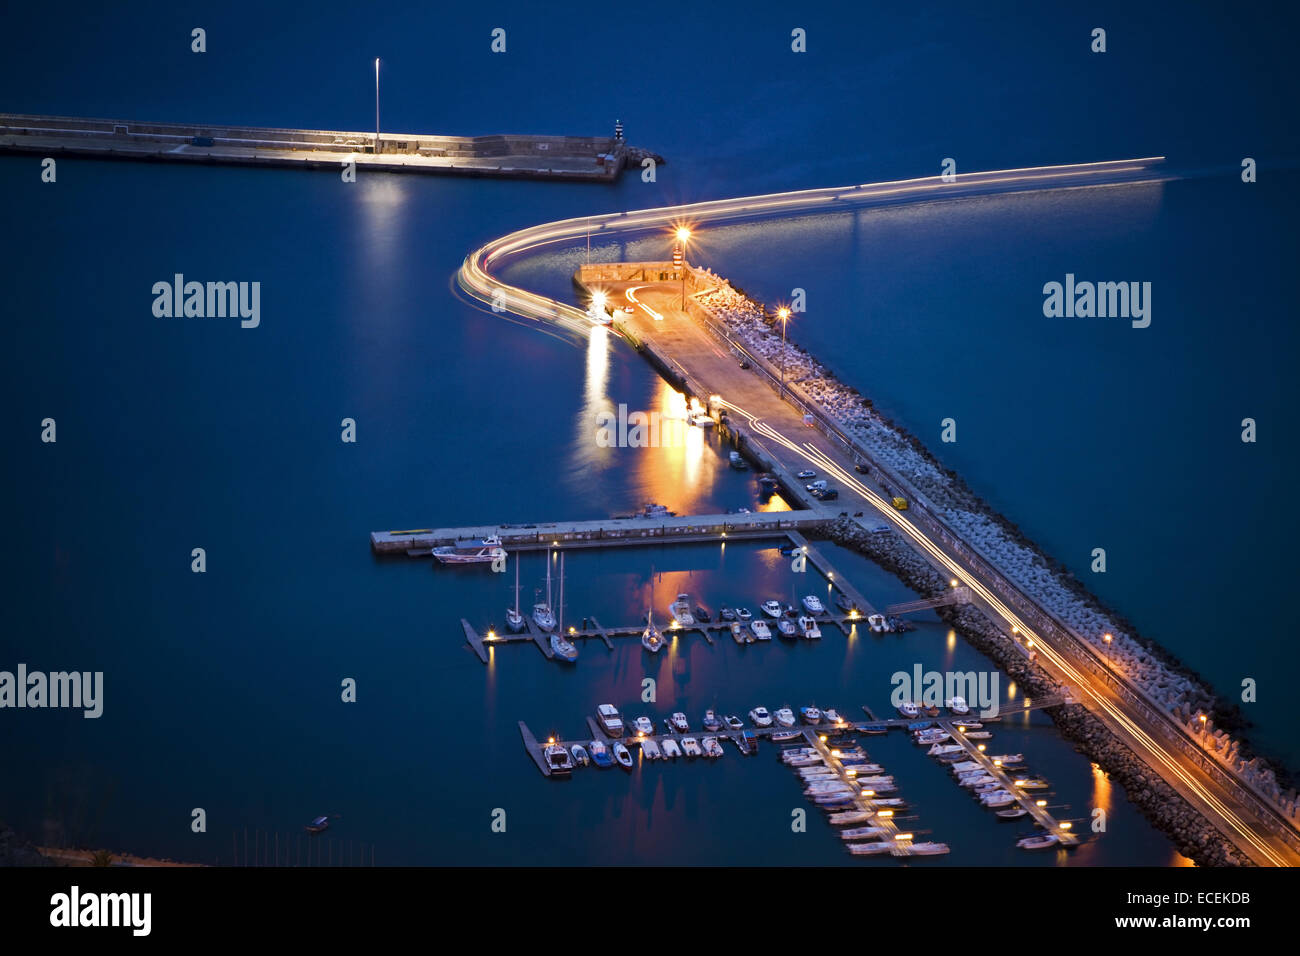 The harbor in Porto Santo, Madeira islands, Portugal, night view - Stock Image